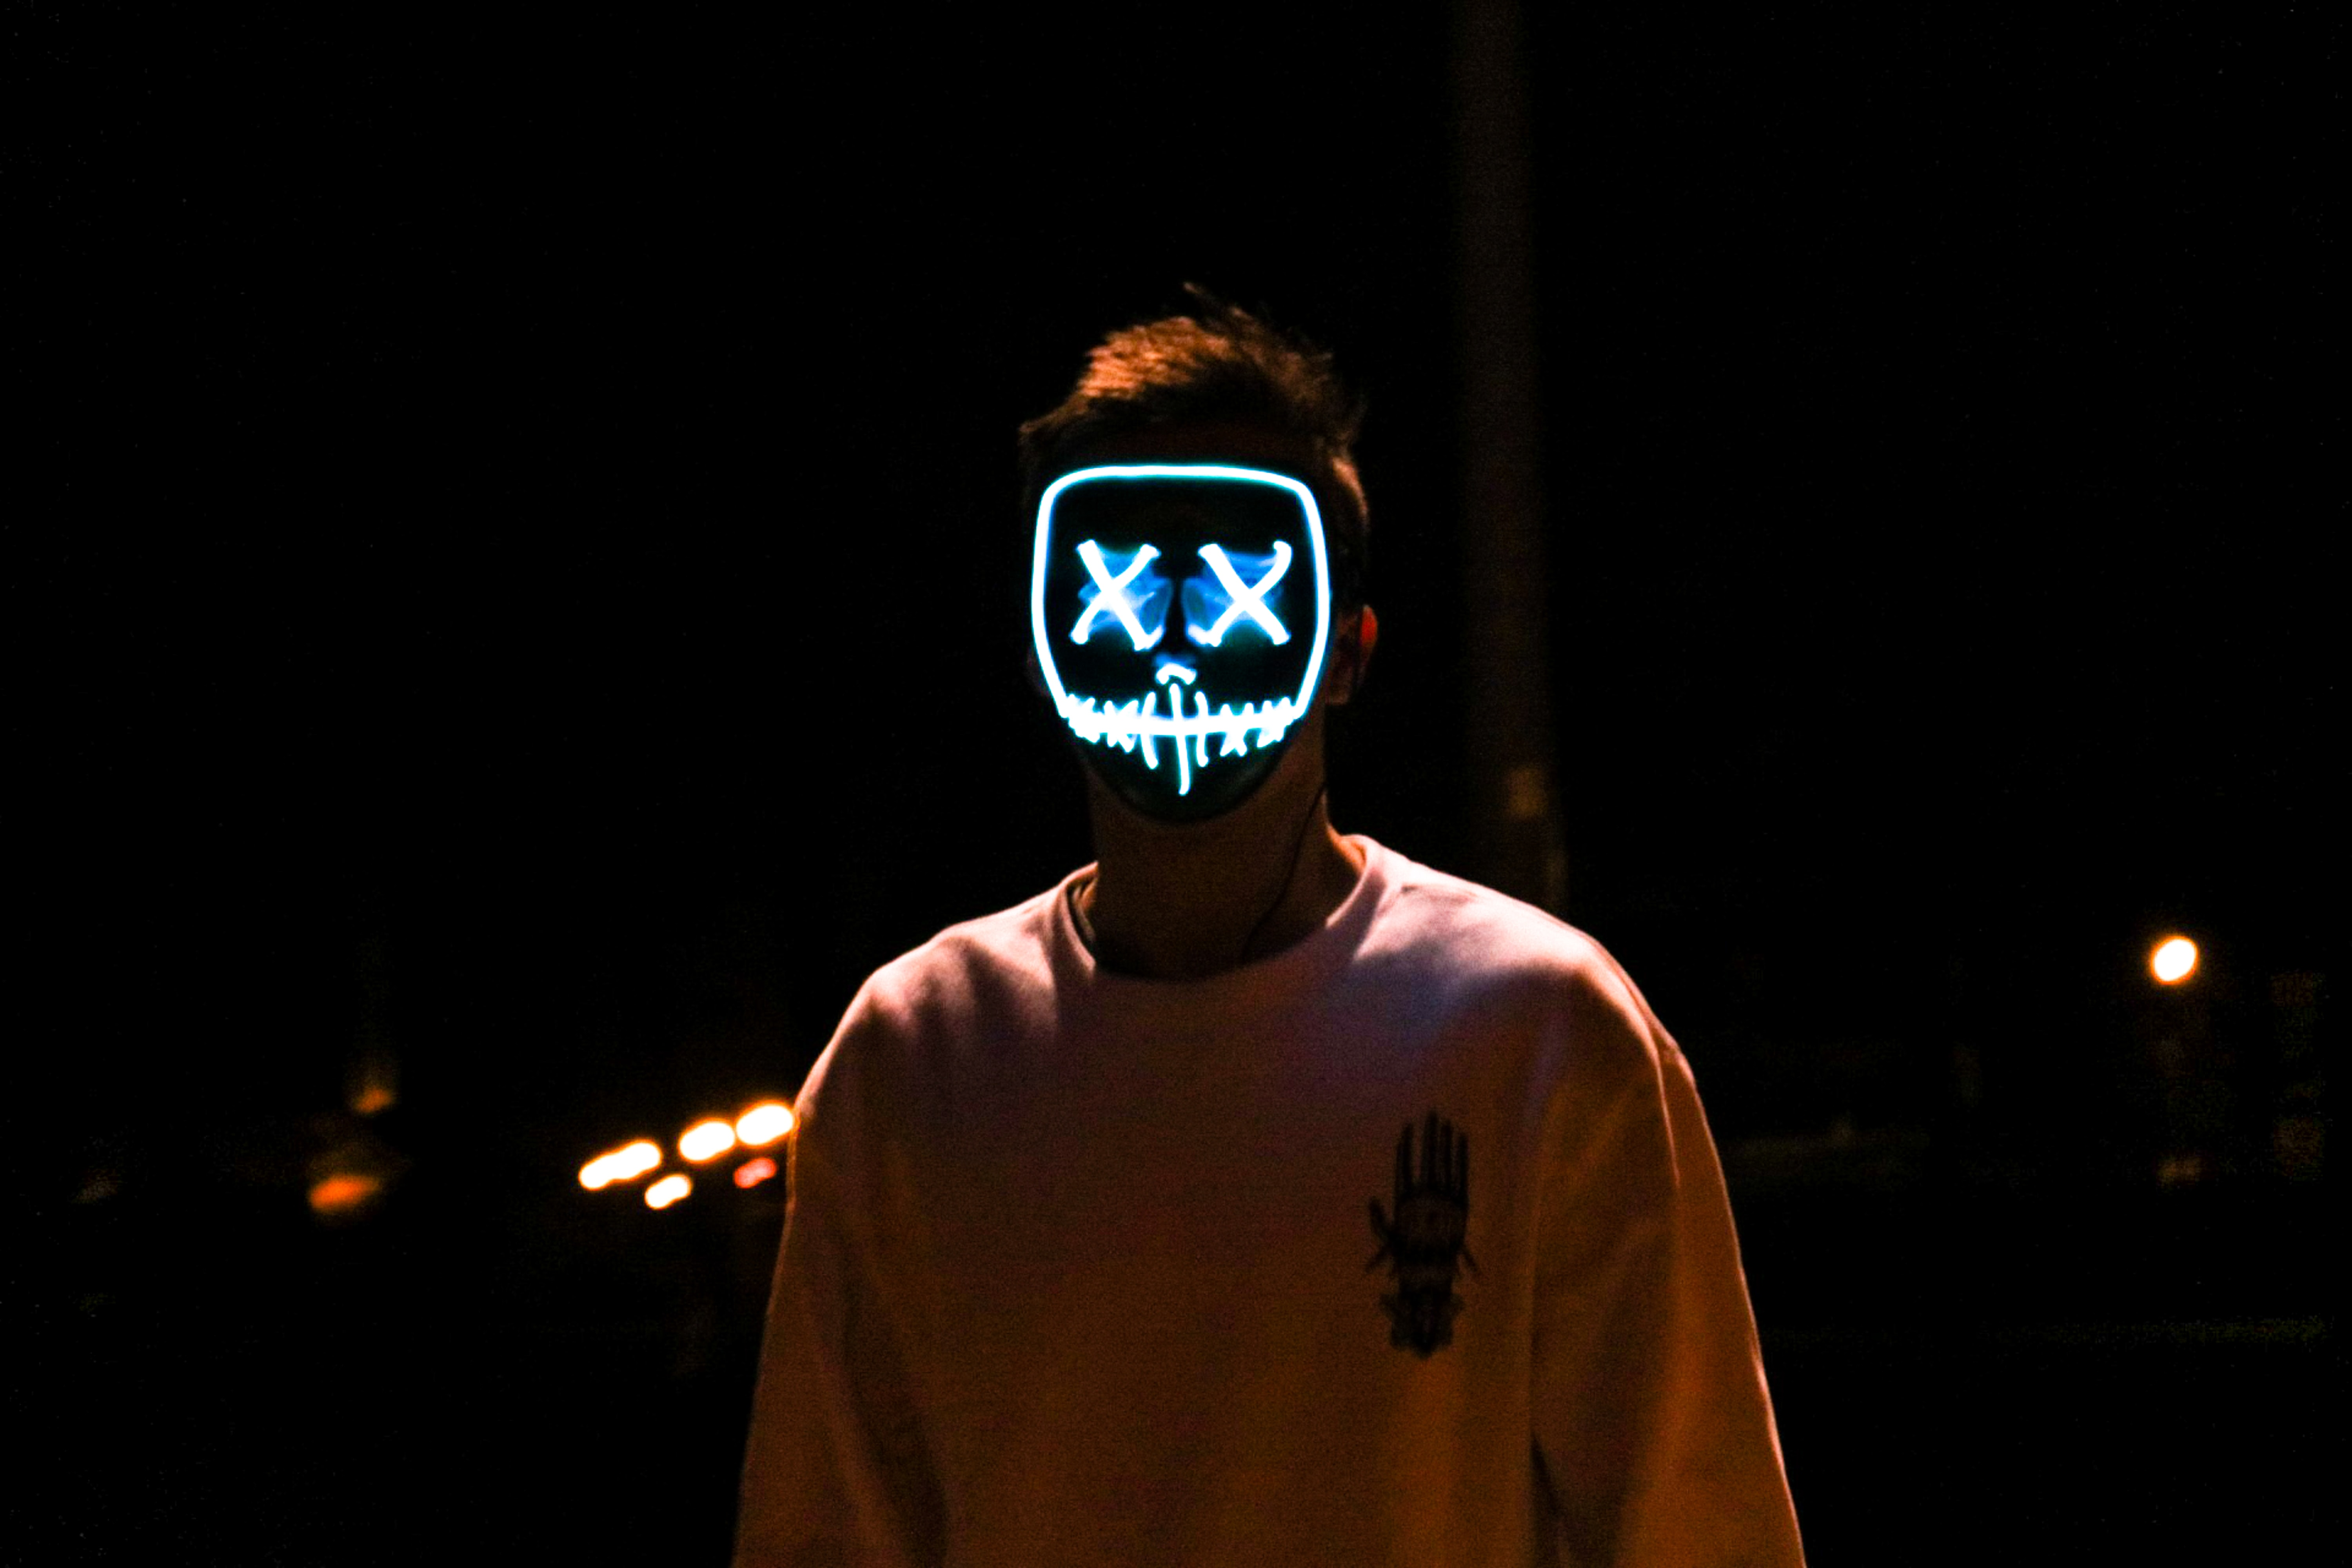 man standing in the dark wearing lighted stitched mouth and crossed eyes mask